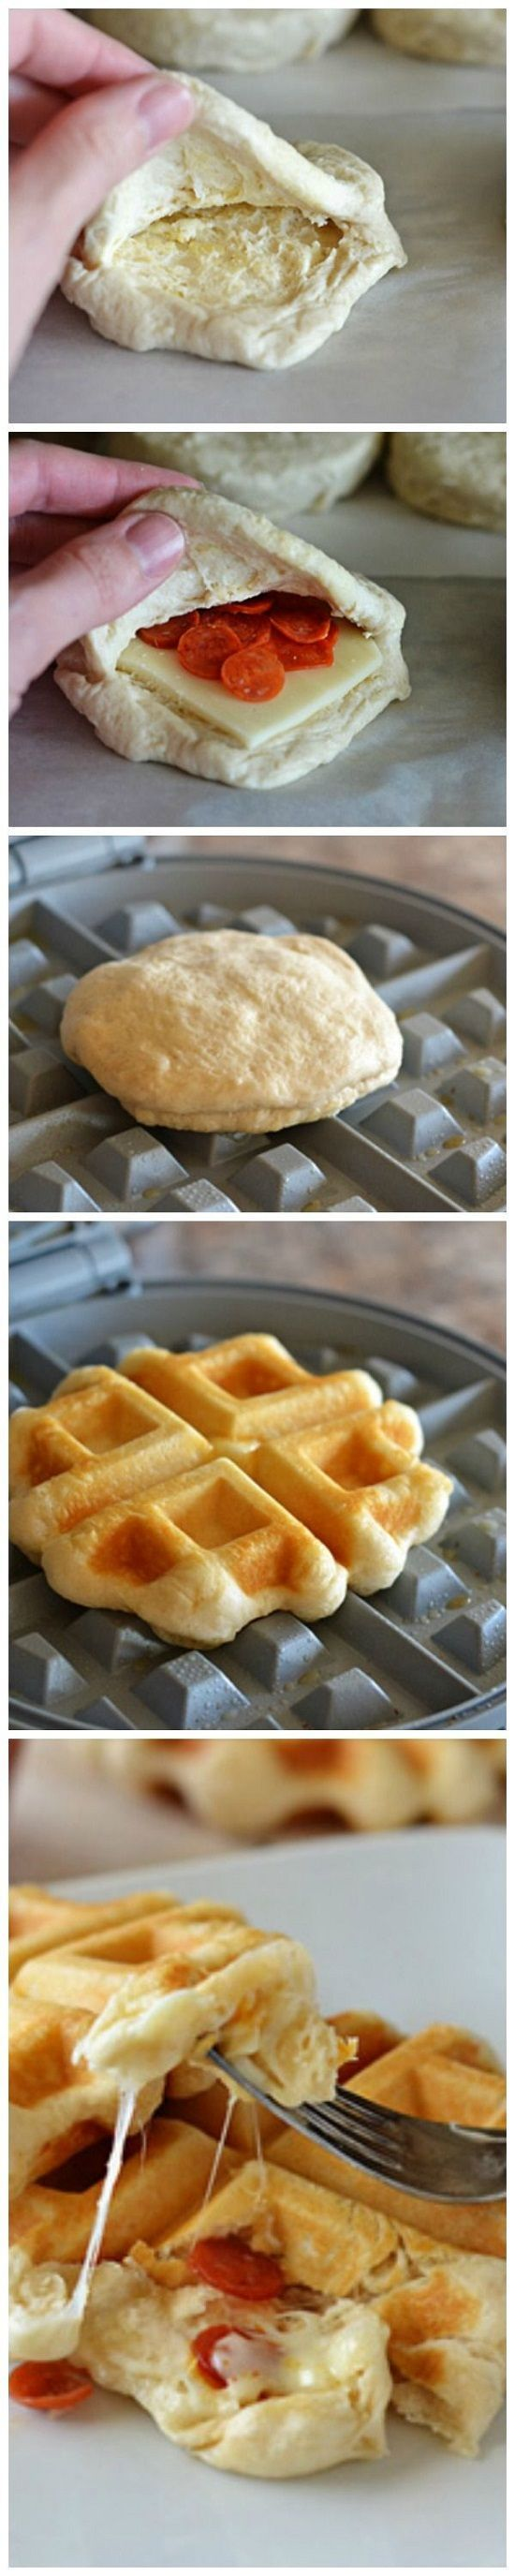 Pizza Waffles Recipe. this is seriously genius.